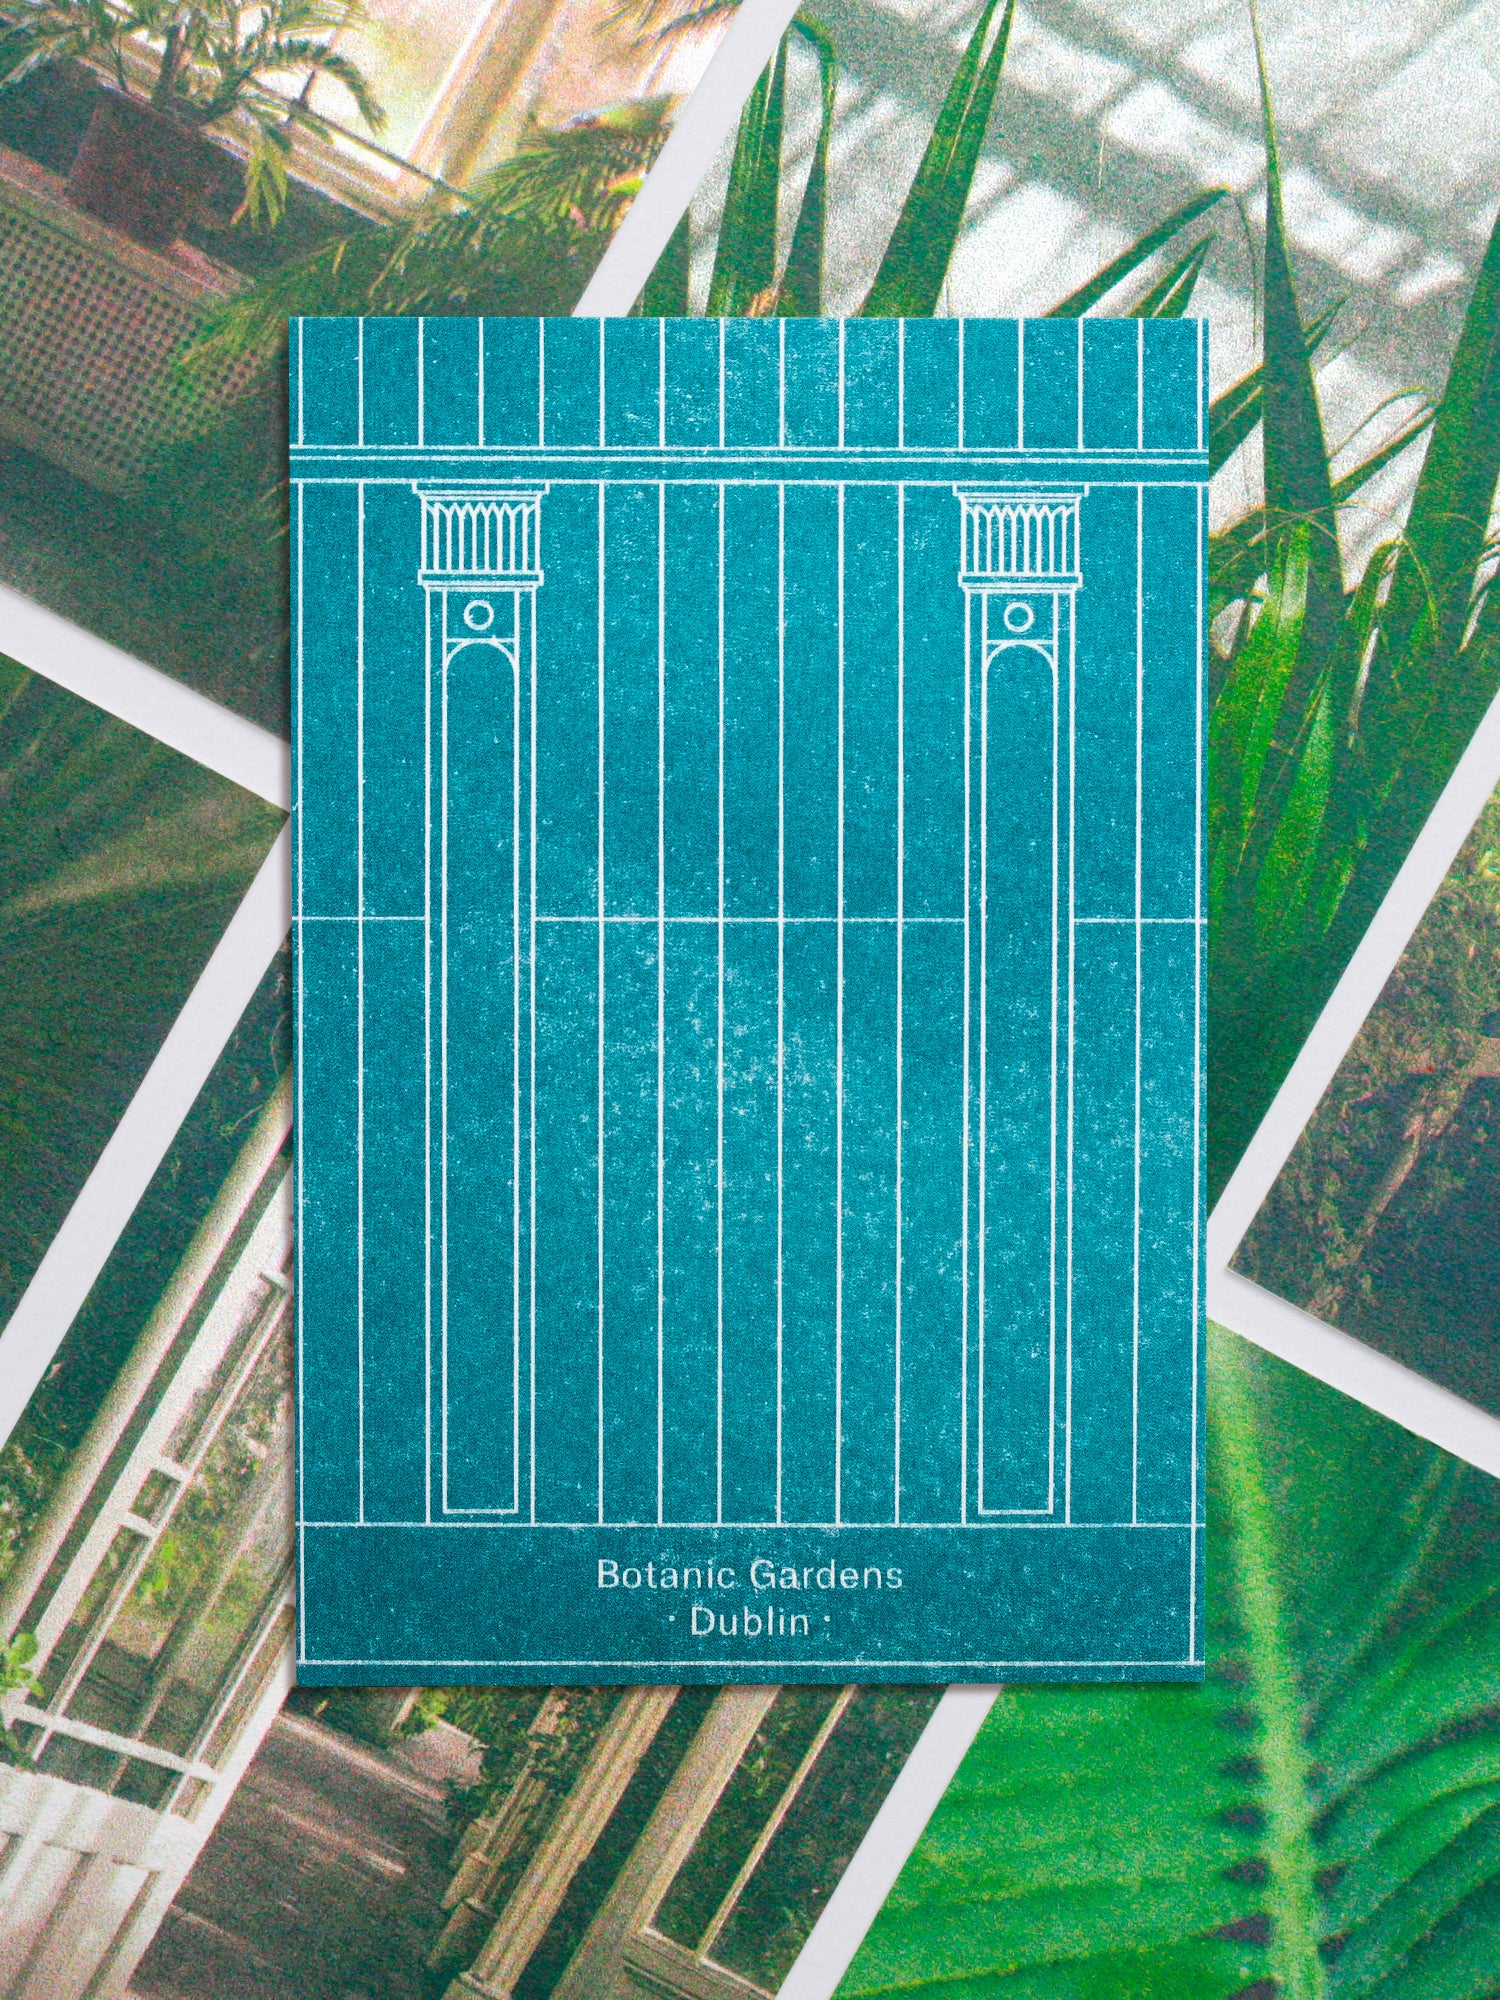 Postcards featuring an illustration inspired by the architecture of the botanic gardens in Dublin.